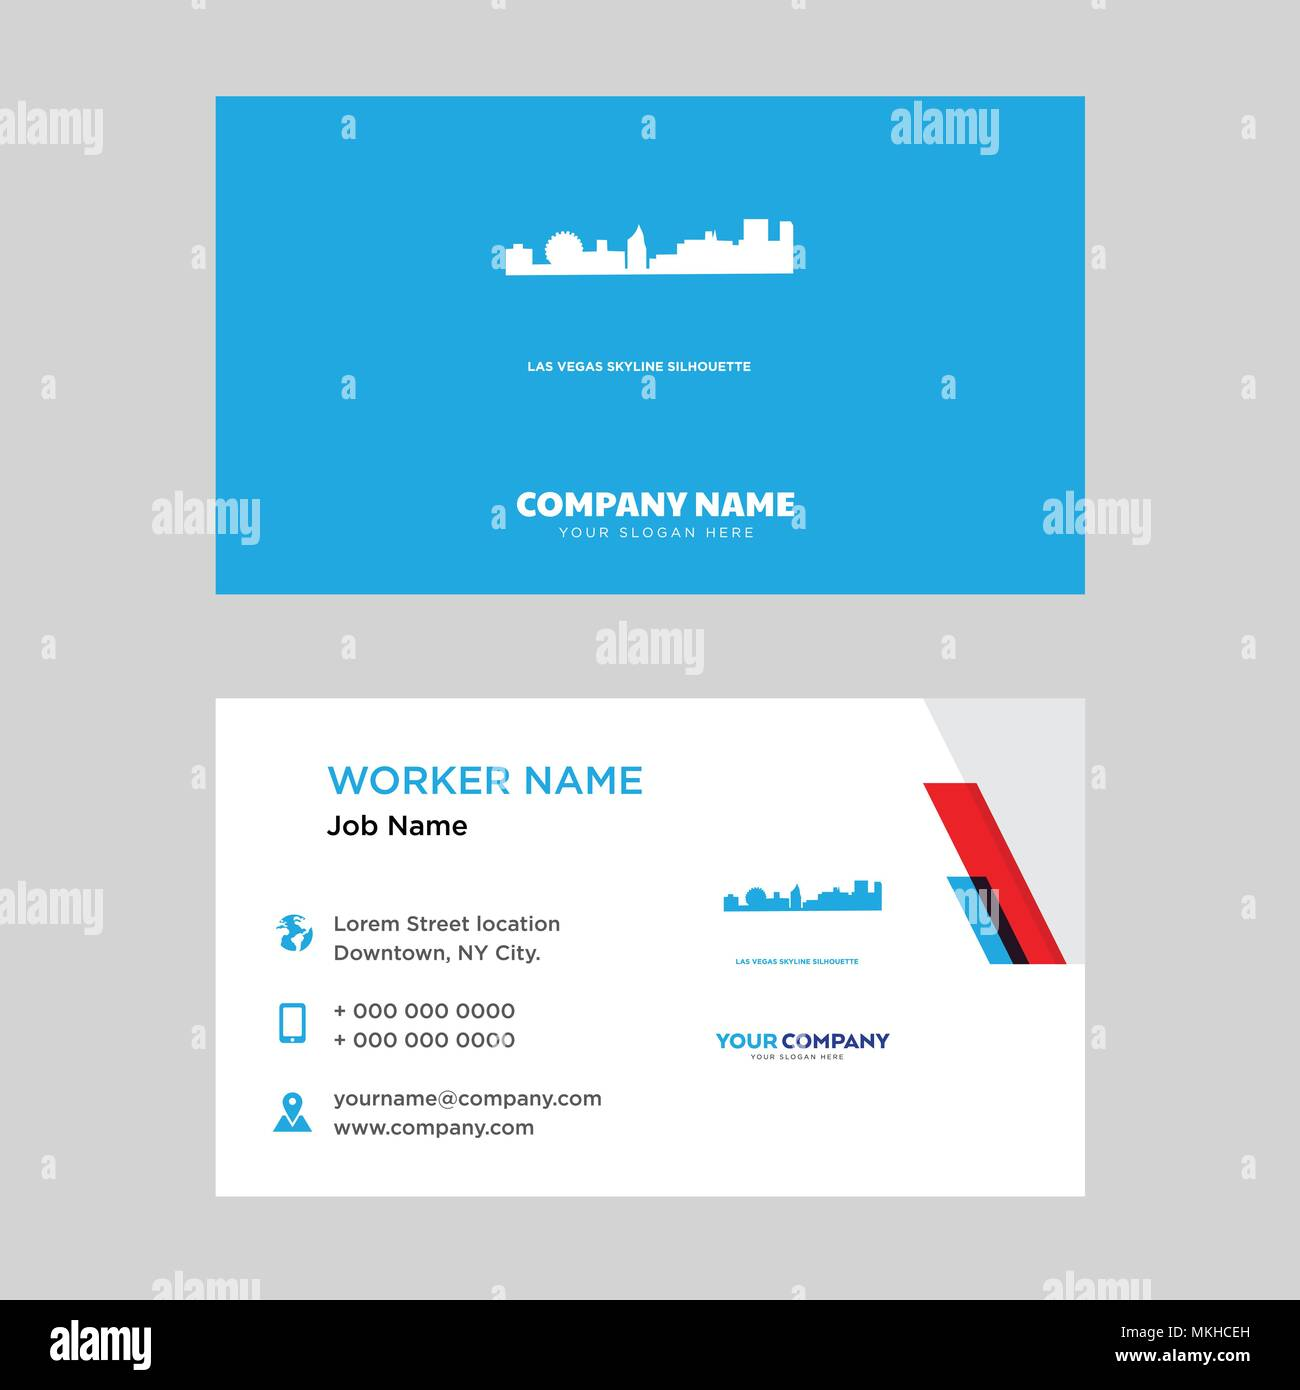 Las Vegas Sky Business Card Design Template Visiting For Your